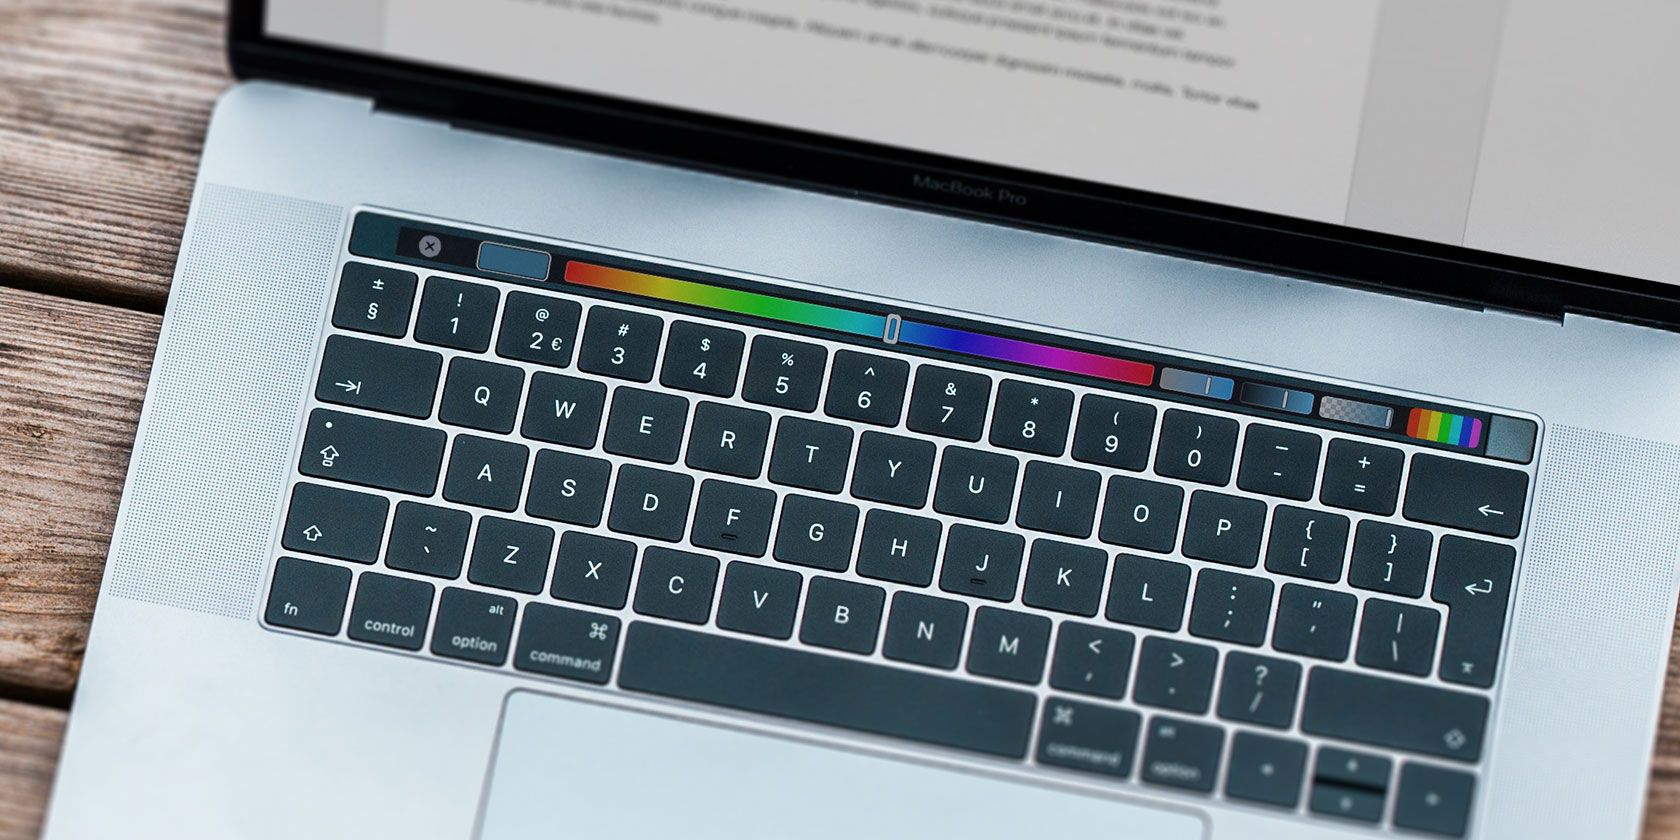 How To Make The Macbook Pro Touch Bar More Useful 4 Tips